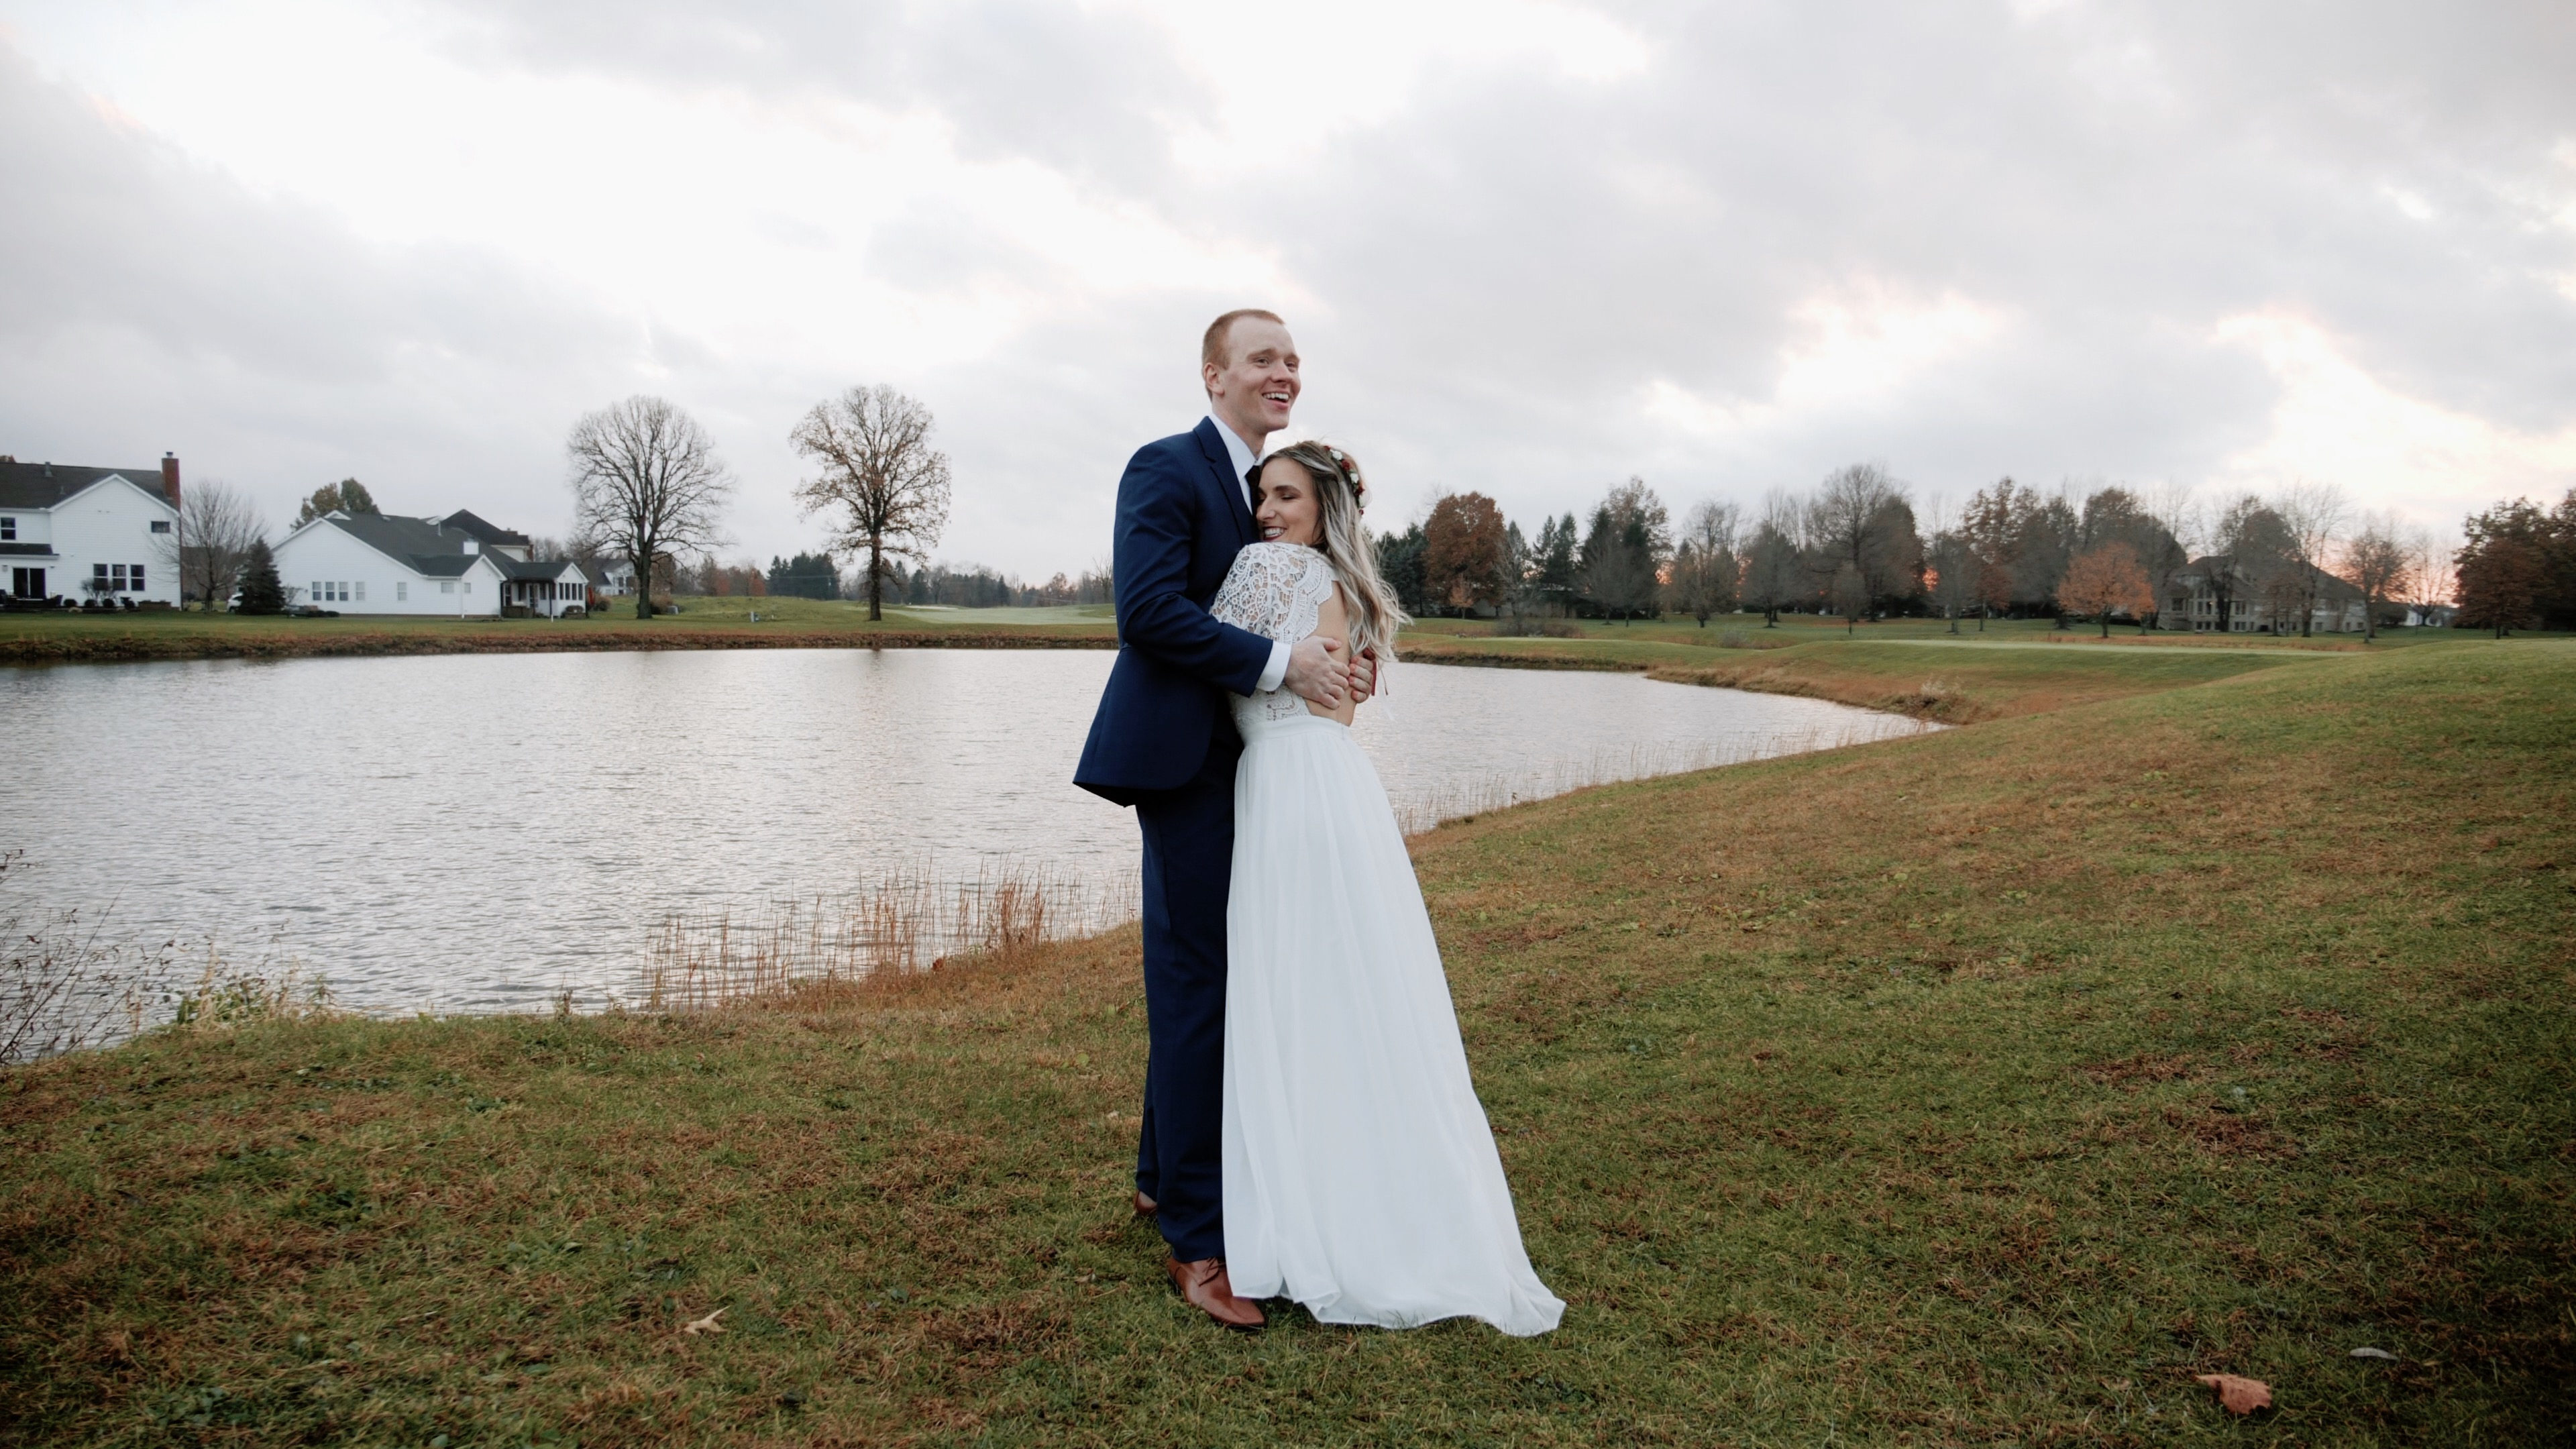 Madison + Tryston | New Albany, Ohio | New Albany Links Golf Course